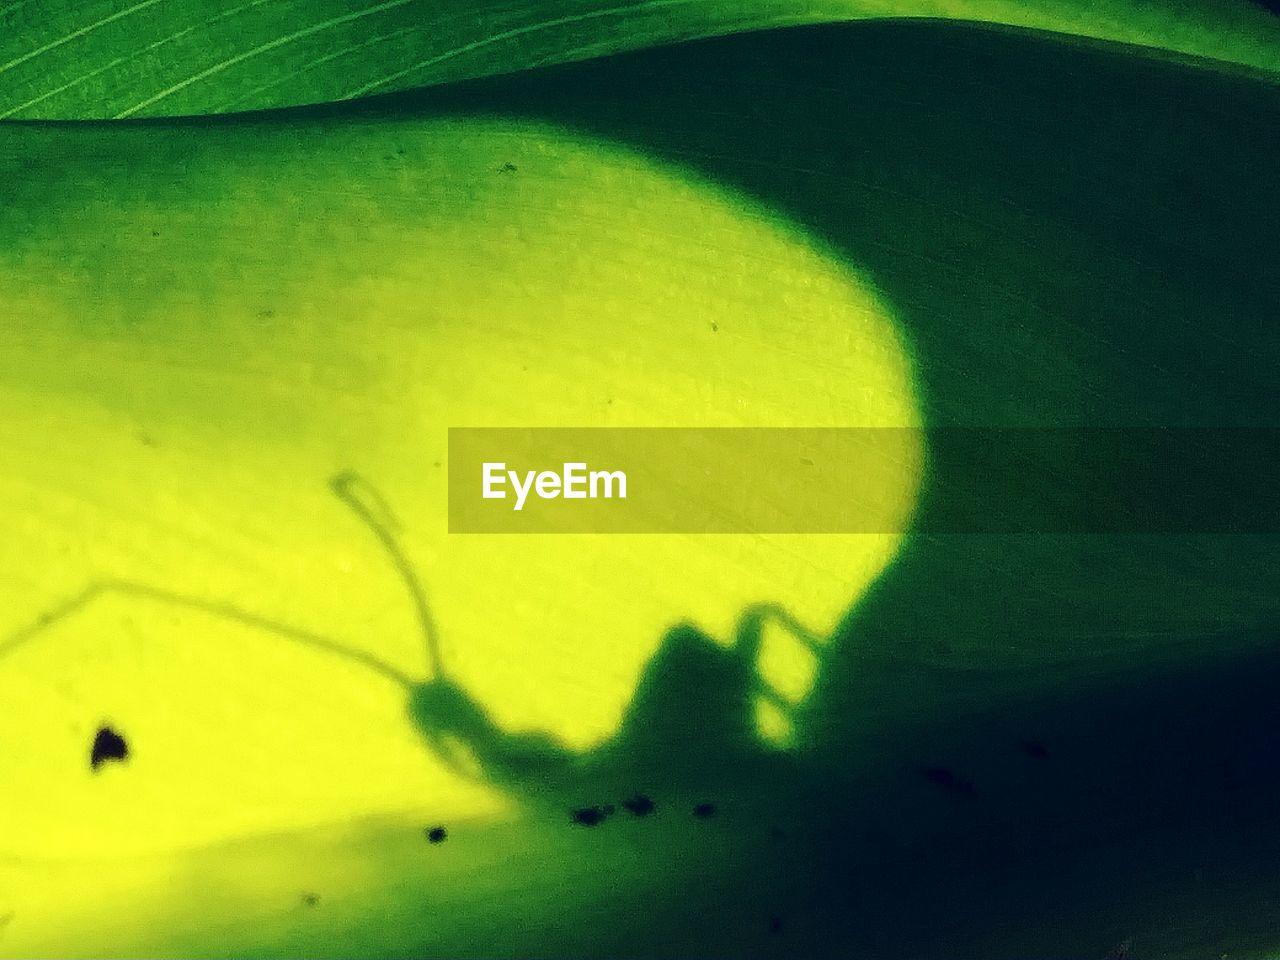 green color, nature, leaf, no people, plant part, plant, close-up, yellow, beauty in nature, full frame, day, water, shadow, freshness, growth, outdoors, animal wildlife, backgrounds, animal, leaves, focus on shadow